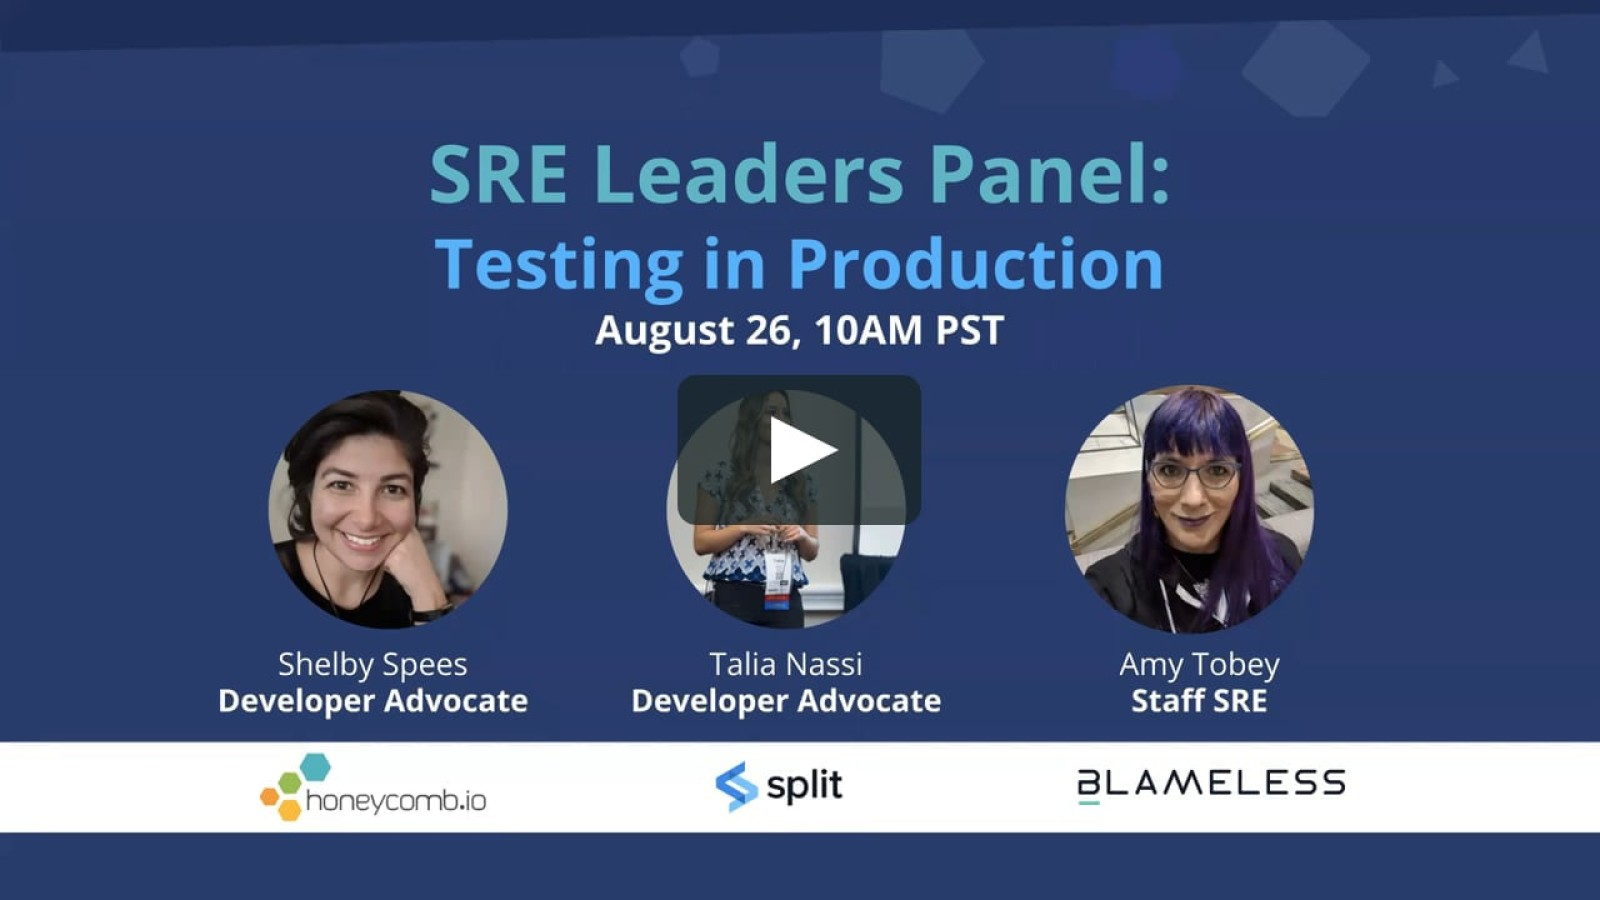 SRE Leaders Panel: Testing in Production